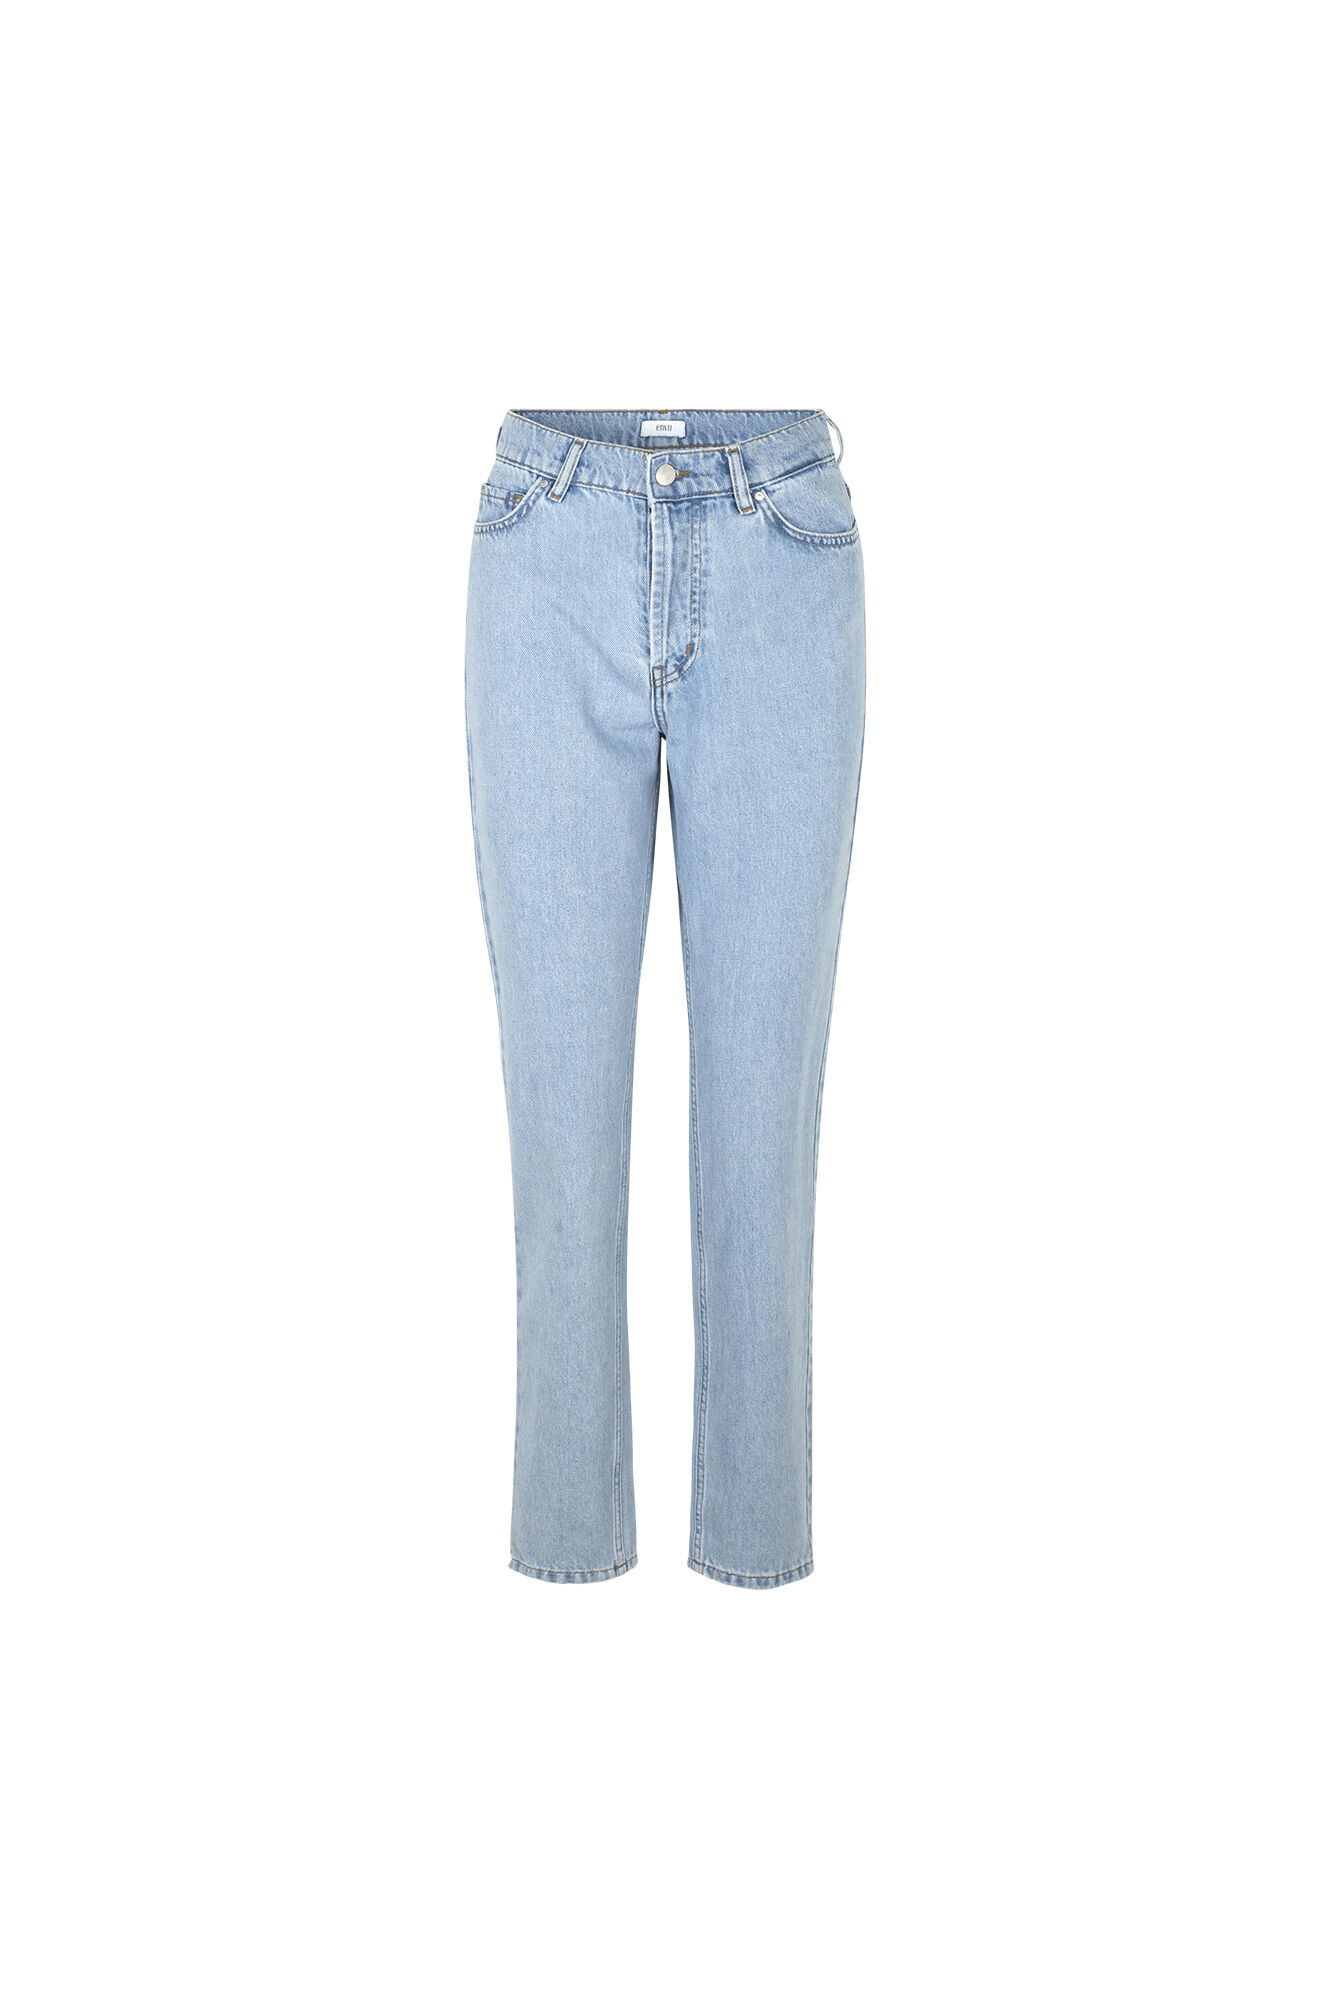 ENBRANDY JEANS LIGHT BLUE 6667, 90S LIGHT BLUE